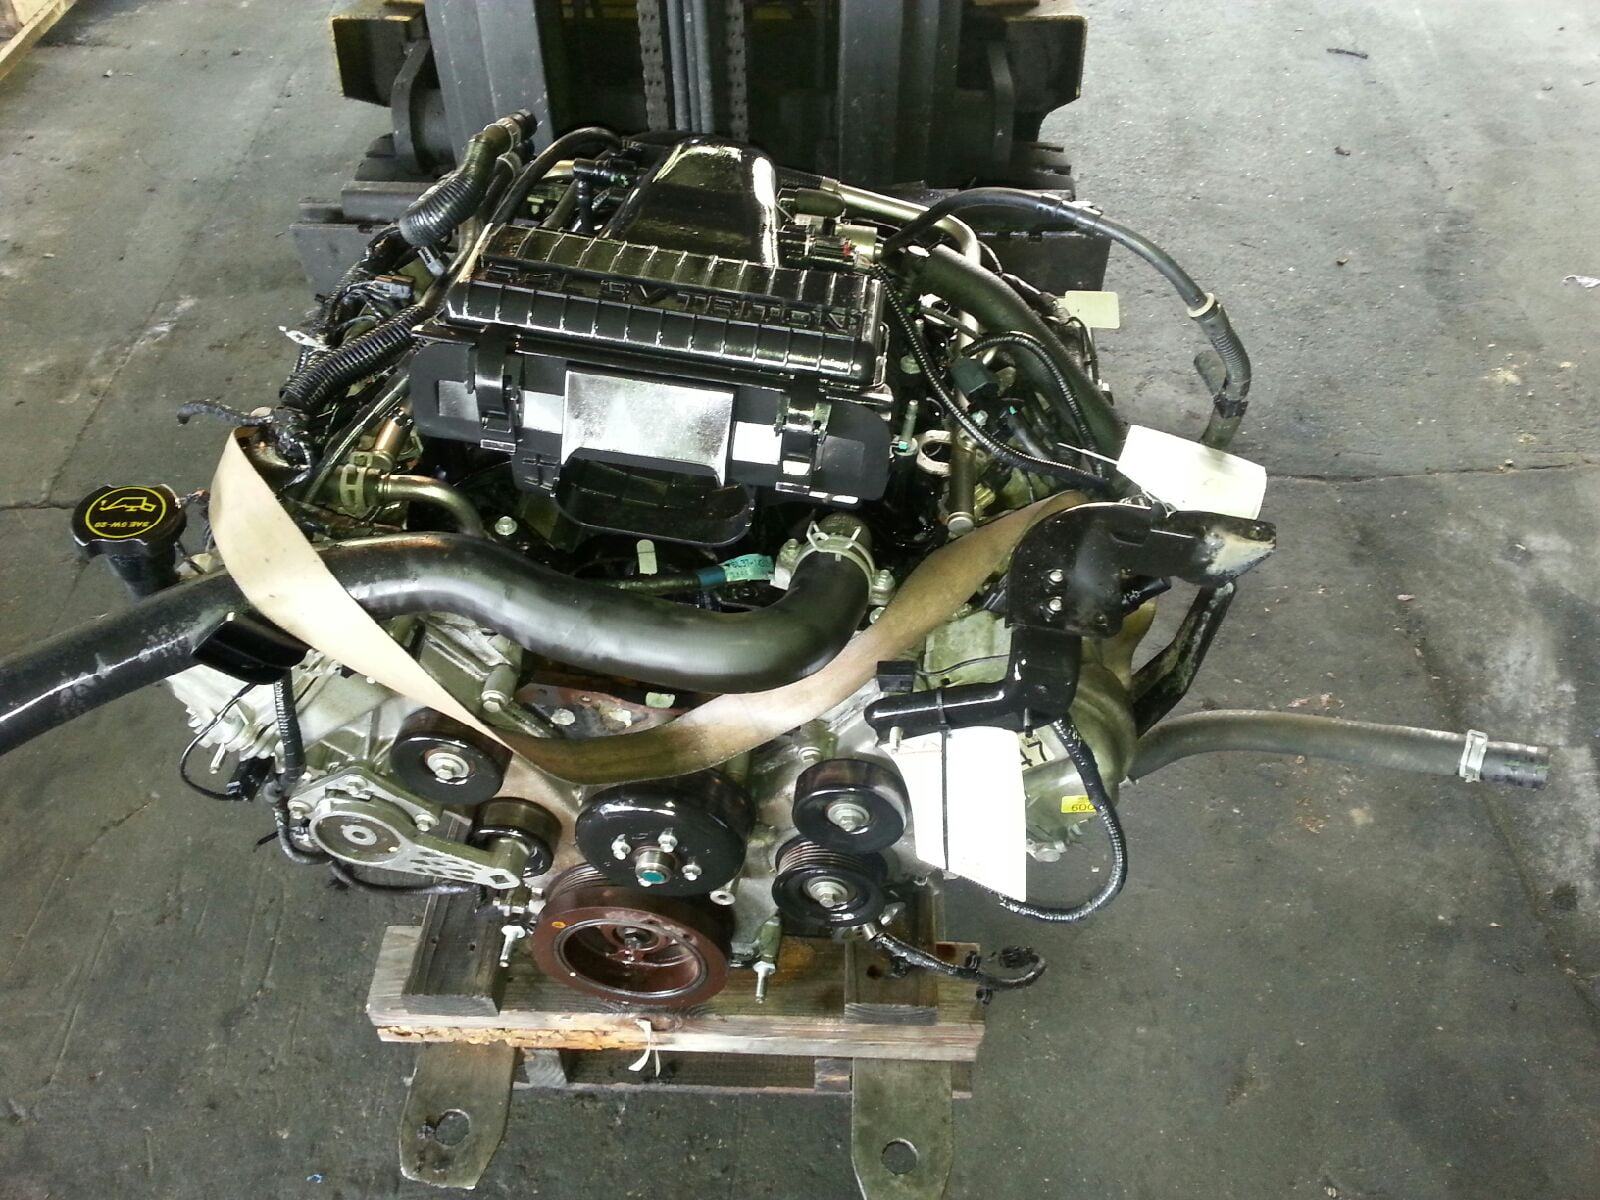 hight resolution of ford f150 f250 f350 f450 expedition engine 5 4l 3v 2004 2005 2006 2007 2008 a a auto truck llc